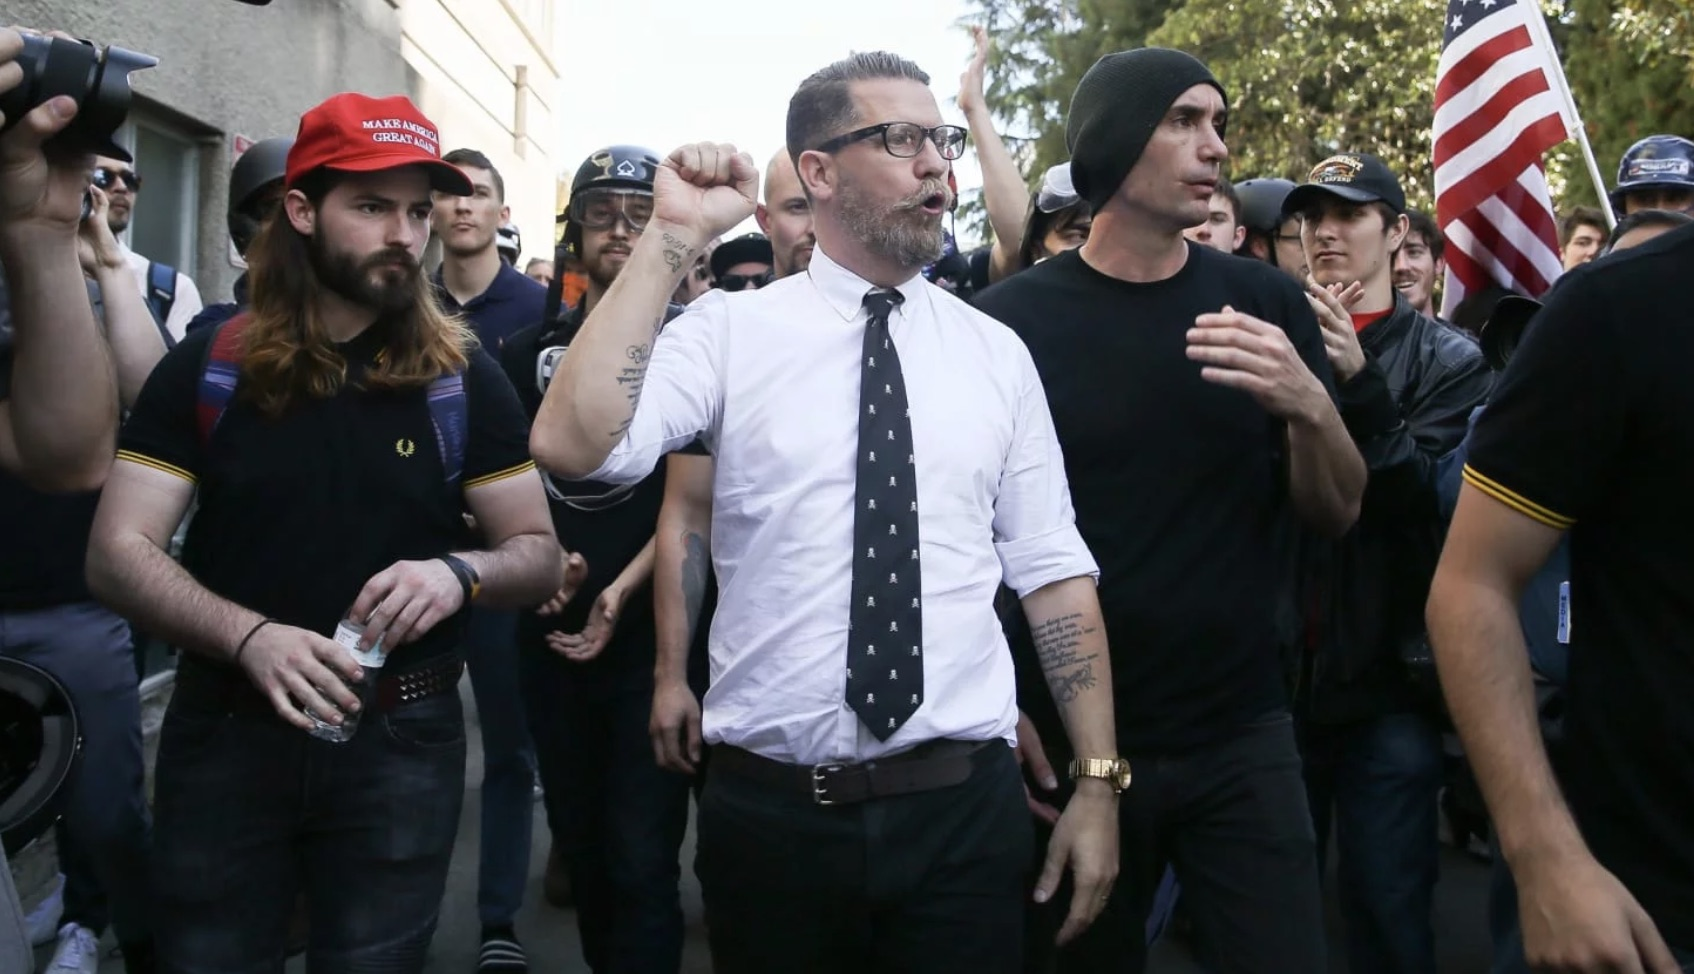 eurovision asia proud boys banned 2